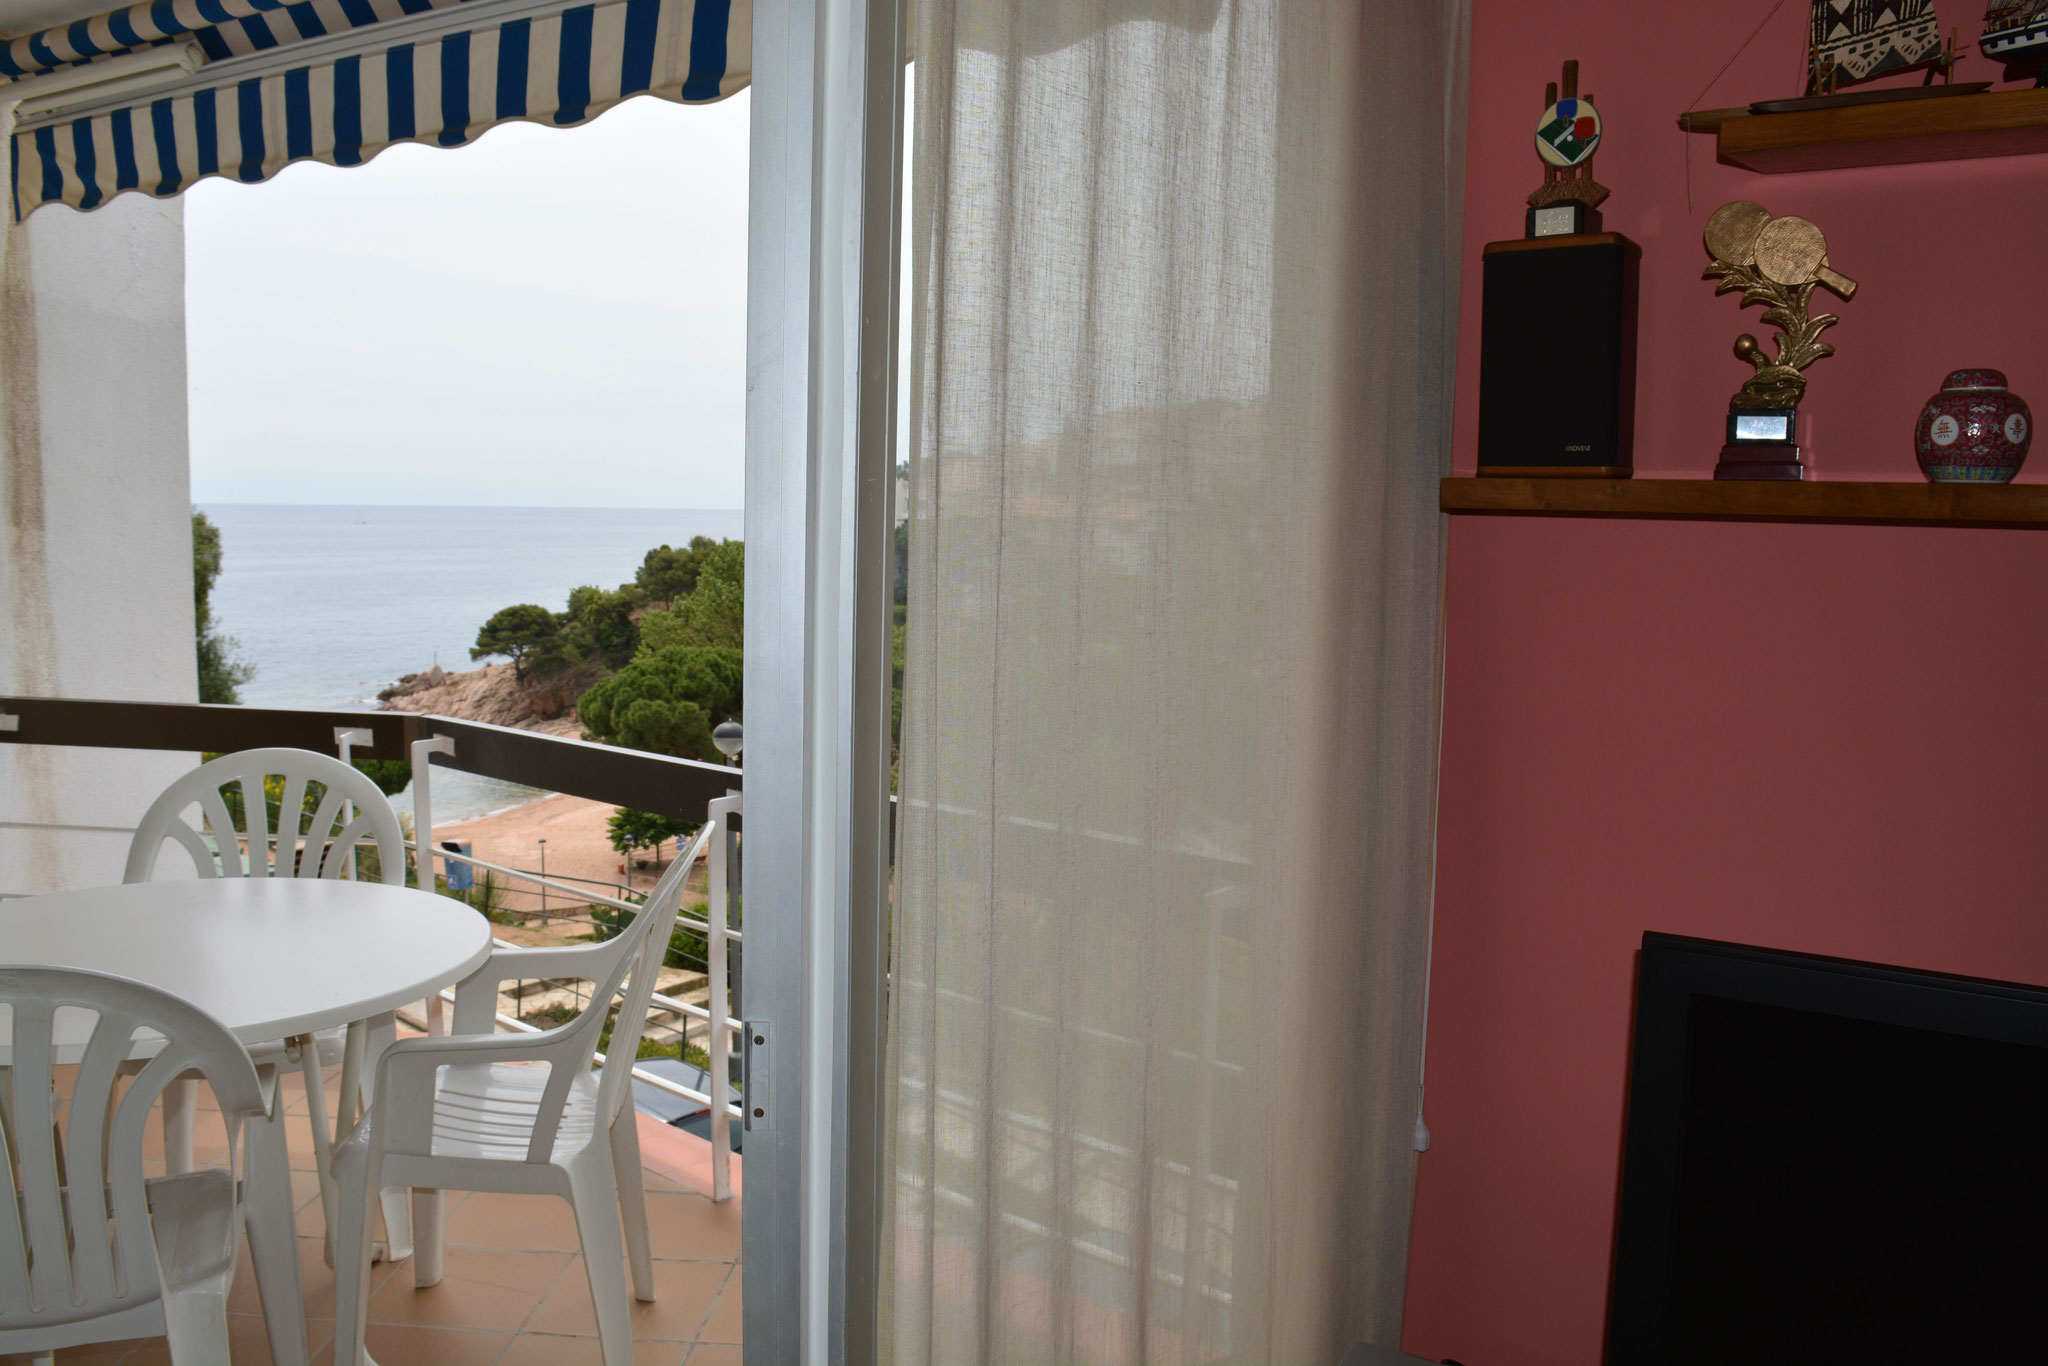 View of the beach from the living room